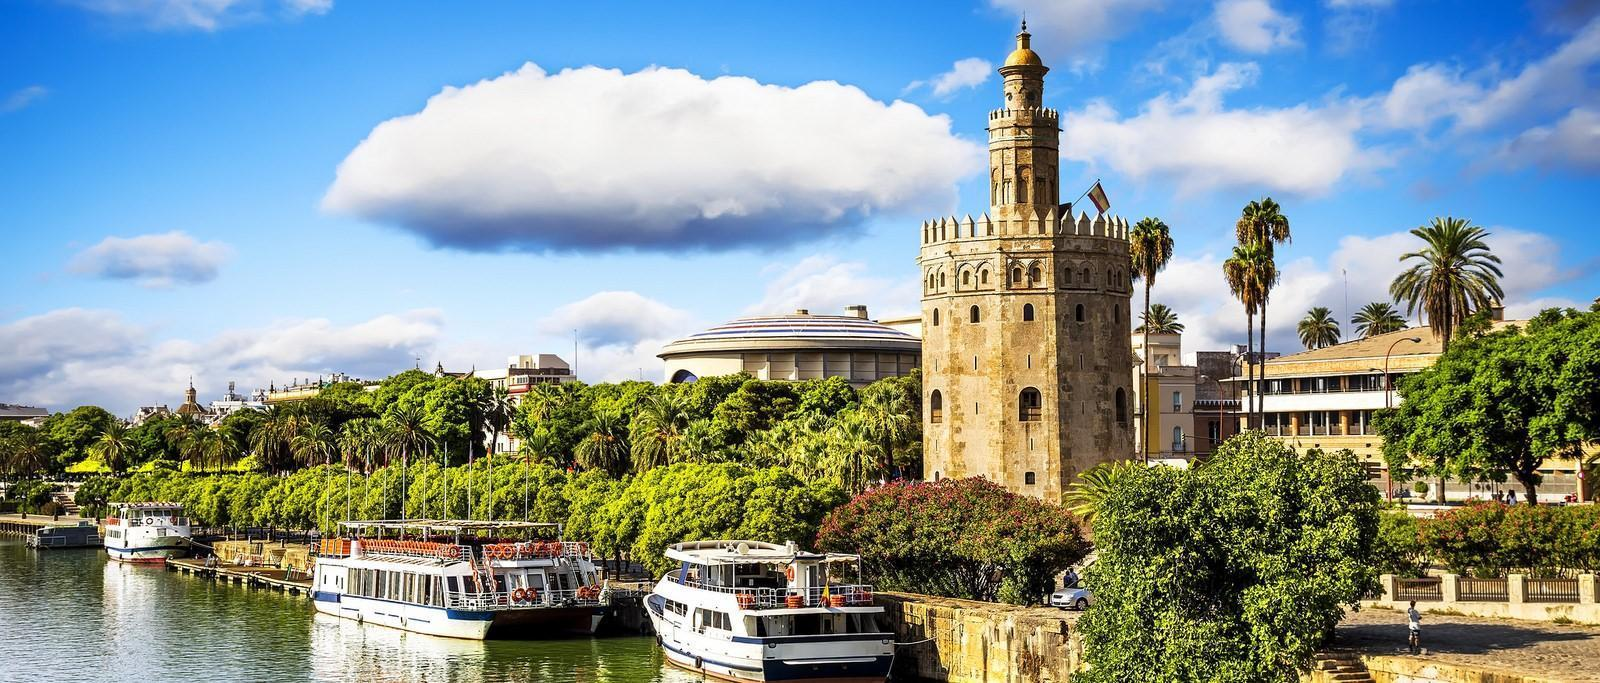 Best of Private Spain Trips by Magical Spain